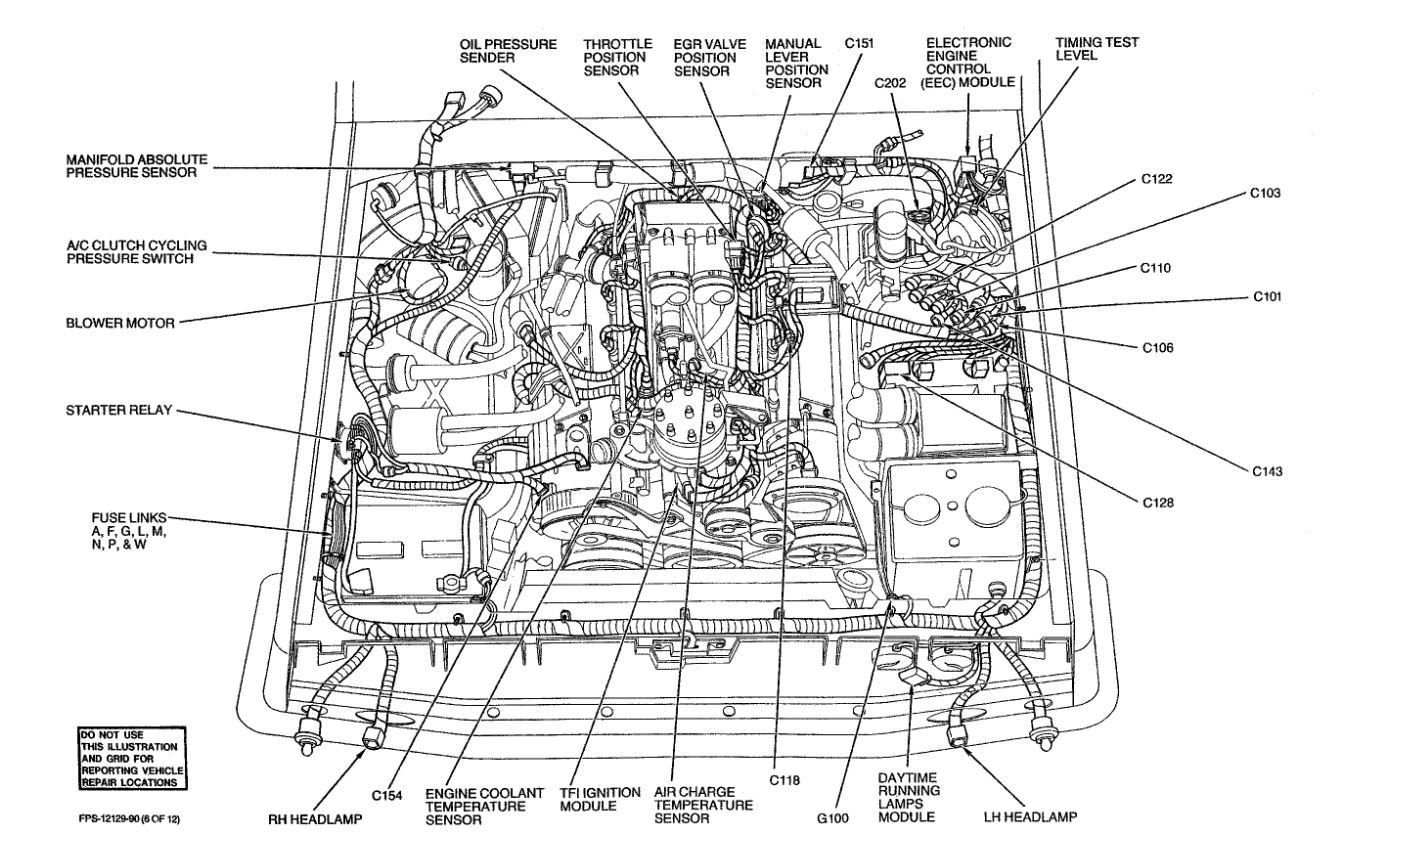 [DIAGRAM] 1986 Ford F 350 Fuel Pump Relay Wiring Diagram